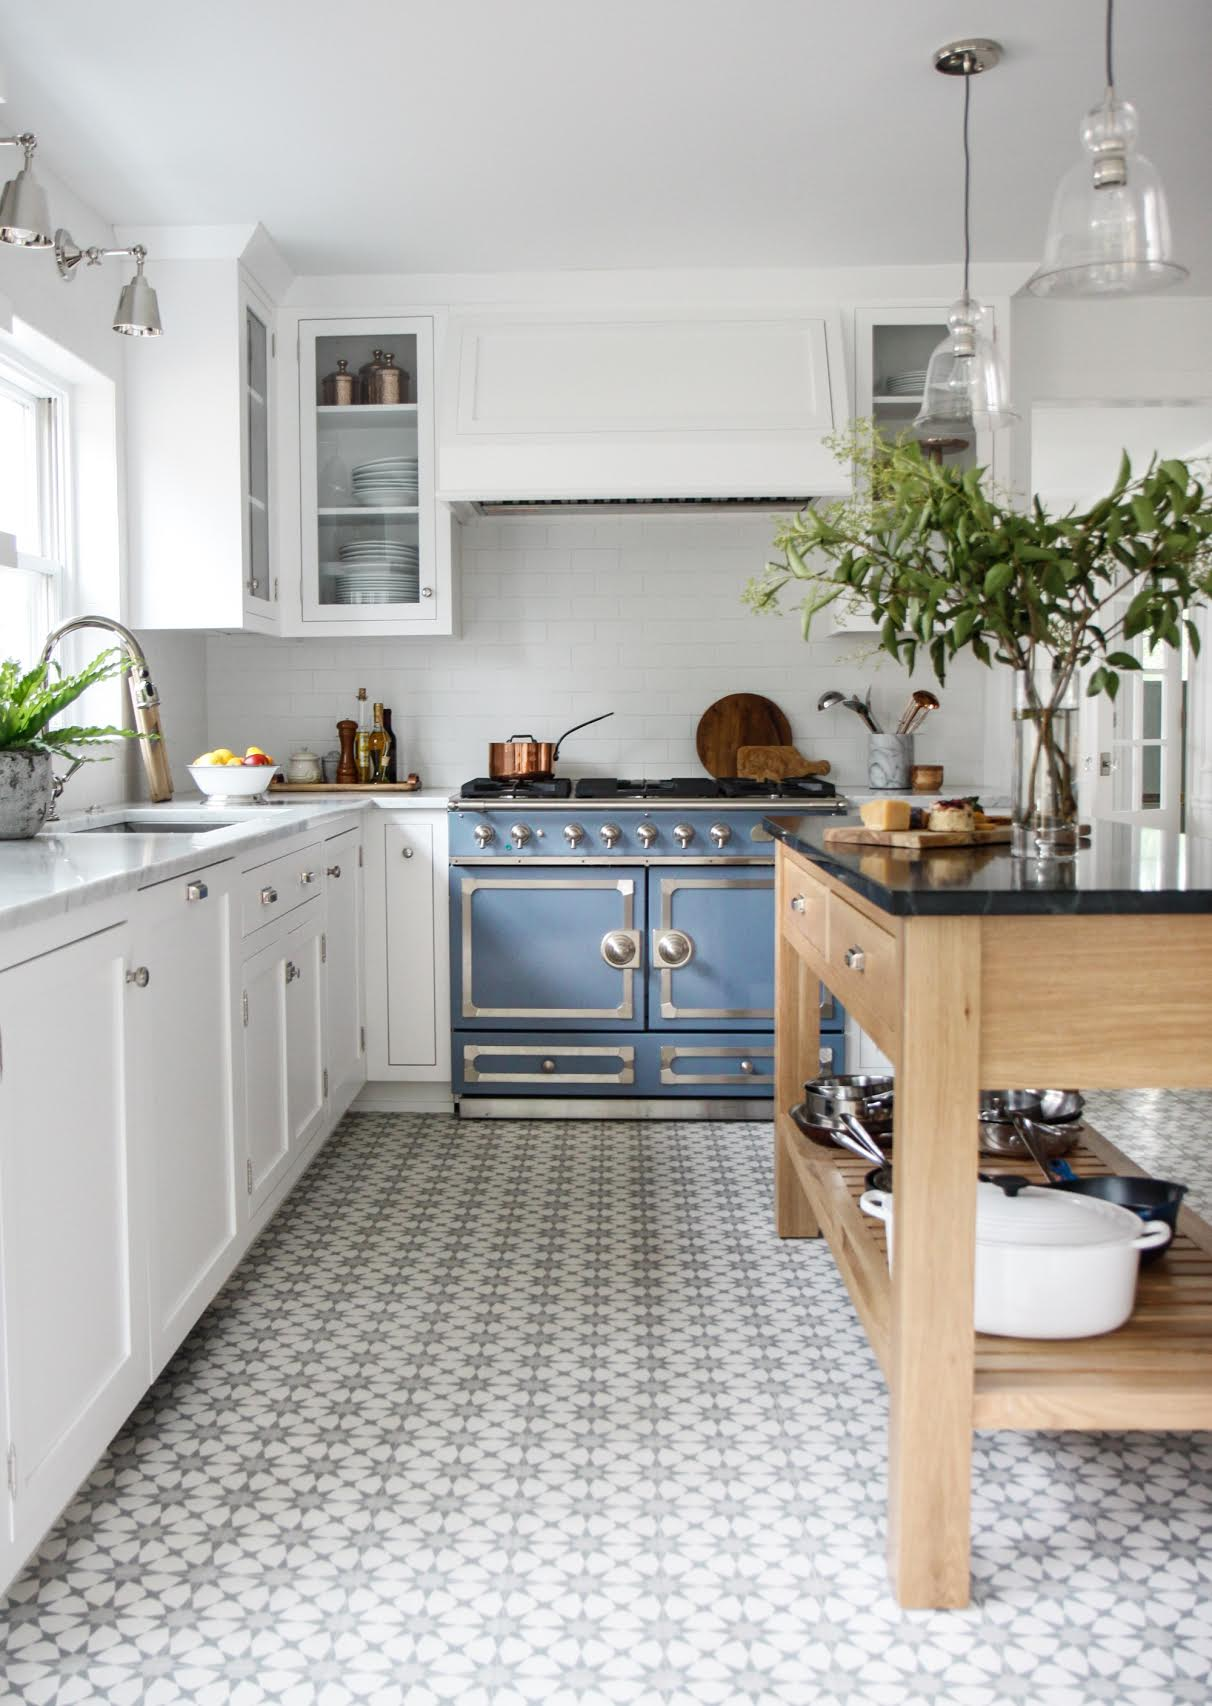 6 Tips For Small Kitchen Design on Small Kitchen:jdu_Ojl7Plw= Kitchen Remodeling Ideas  id=20771